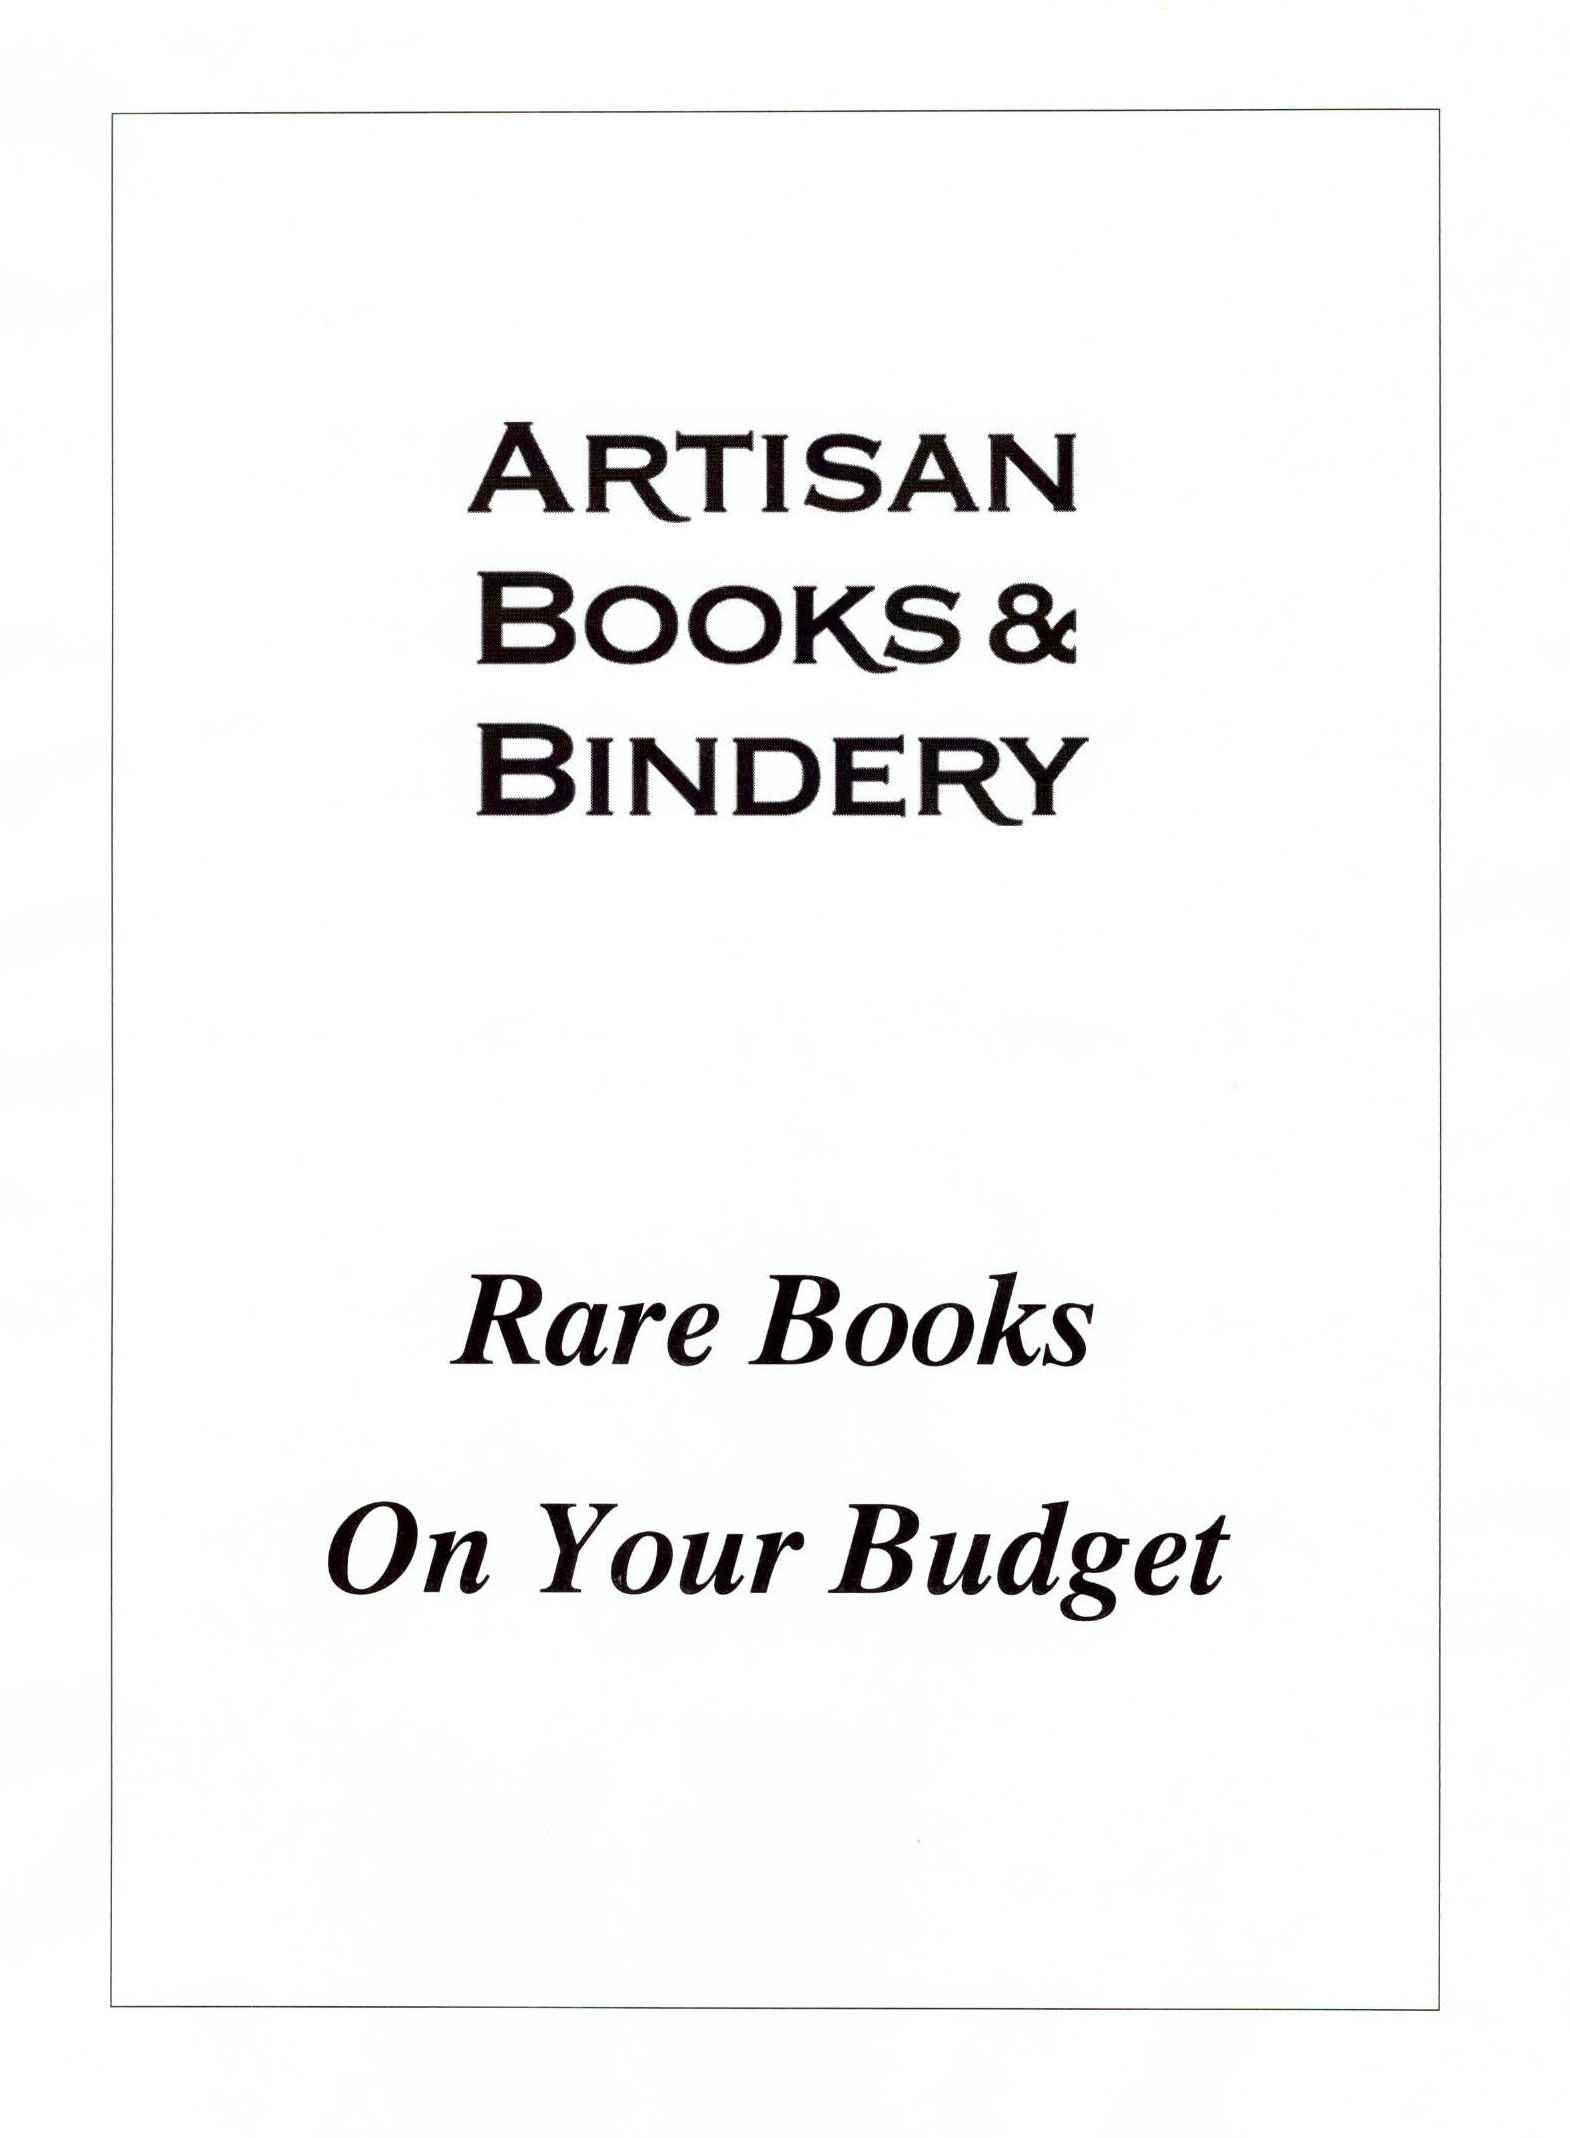 Rare Book Subscriptions